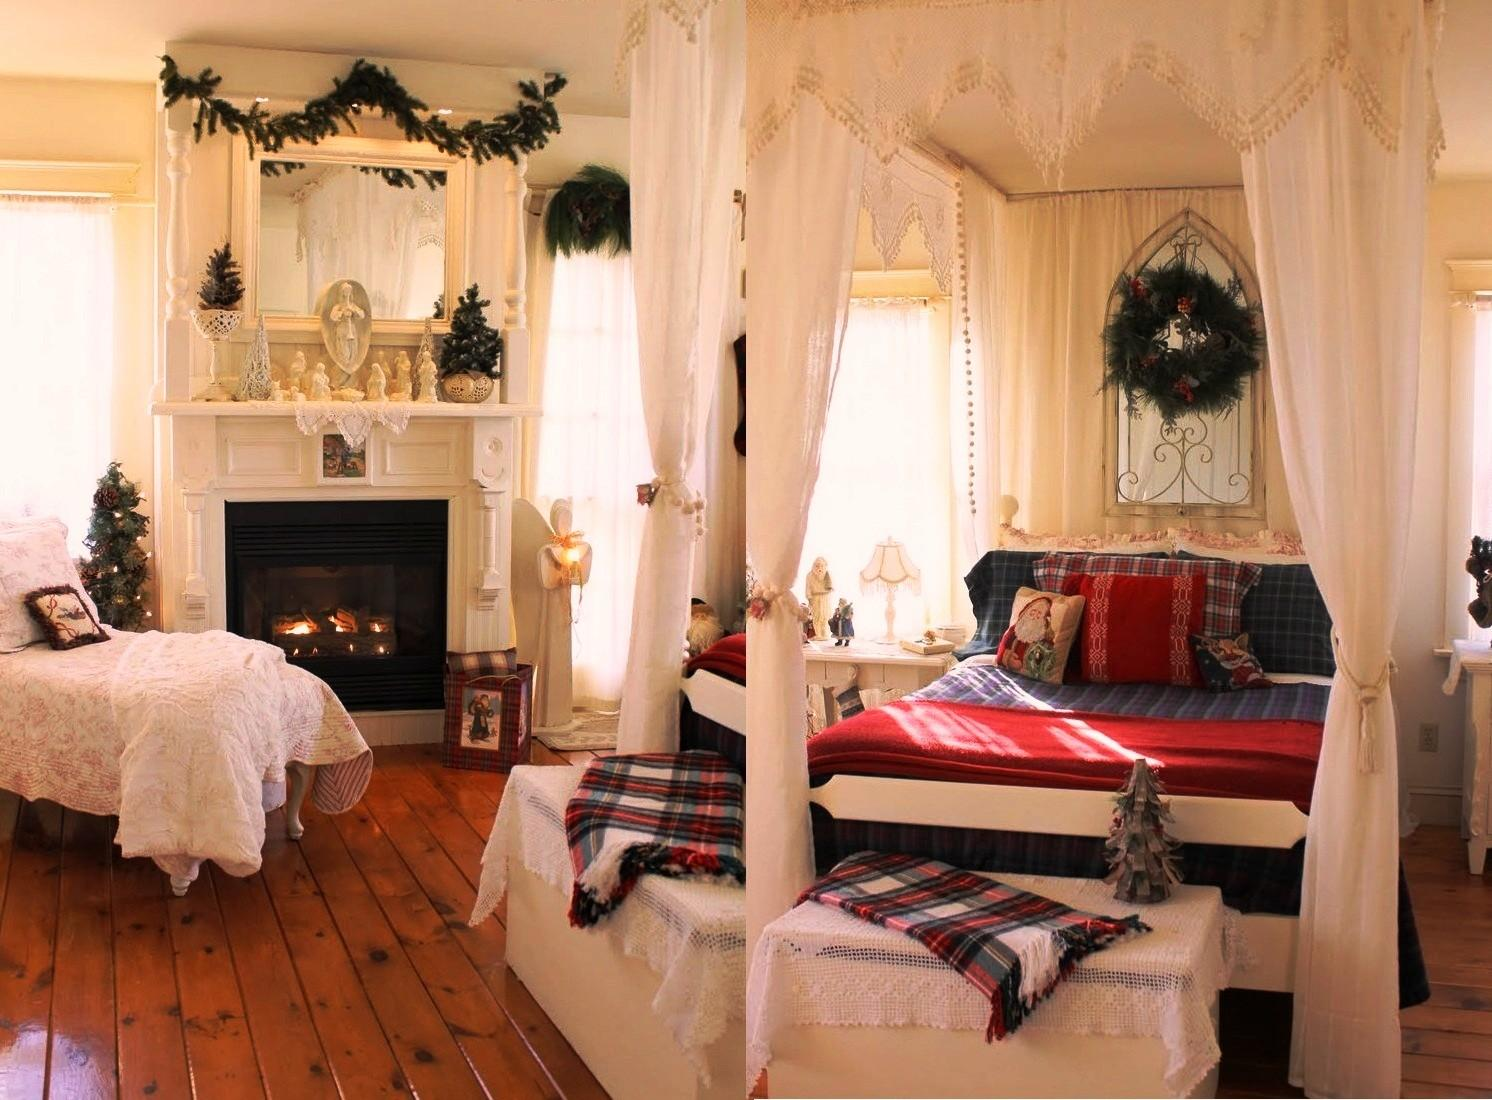 Christmas Bedroom Decorations Ideas